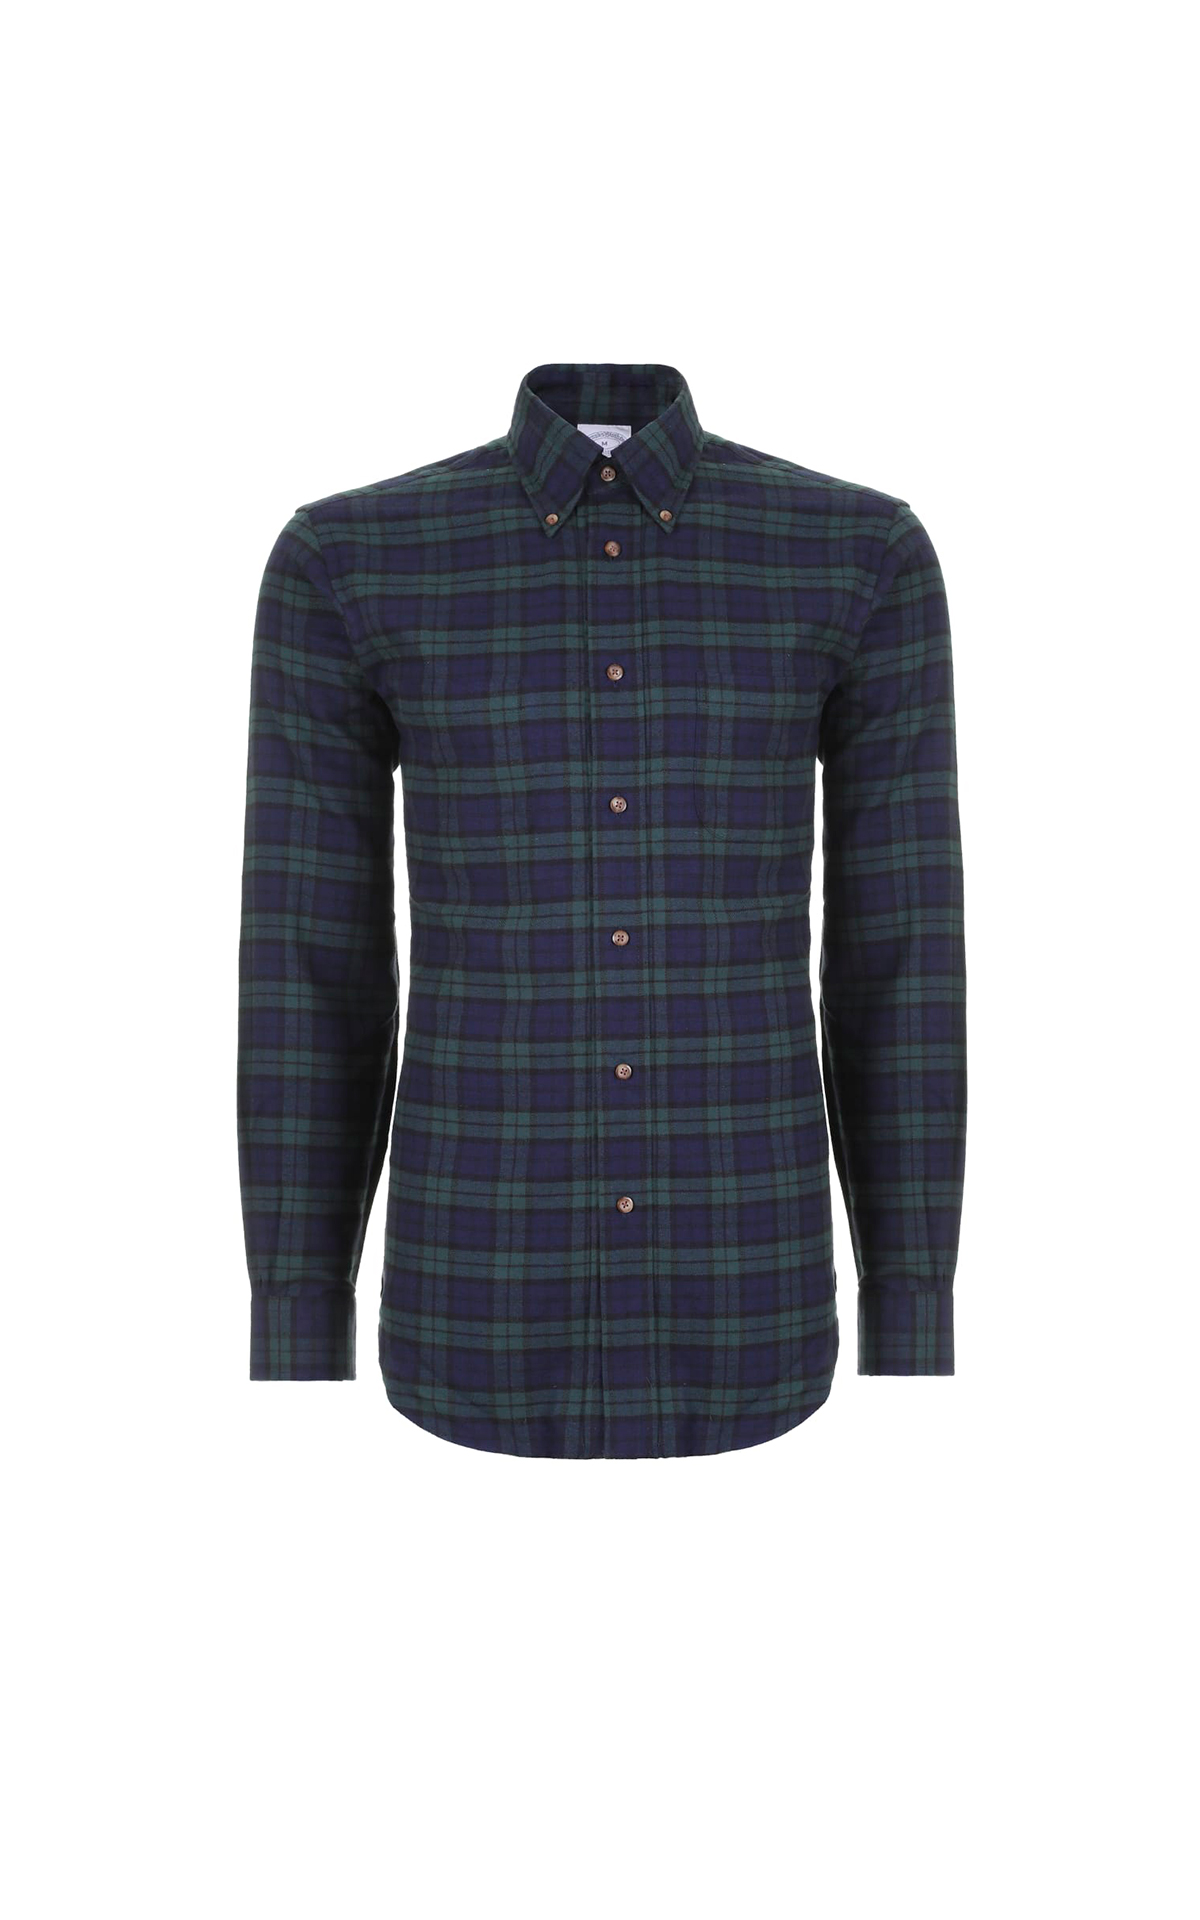 Blue and green tartan shirt Brooks Brothers